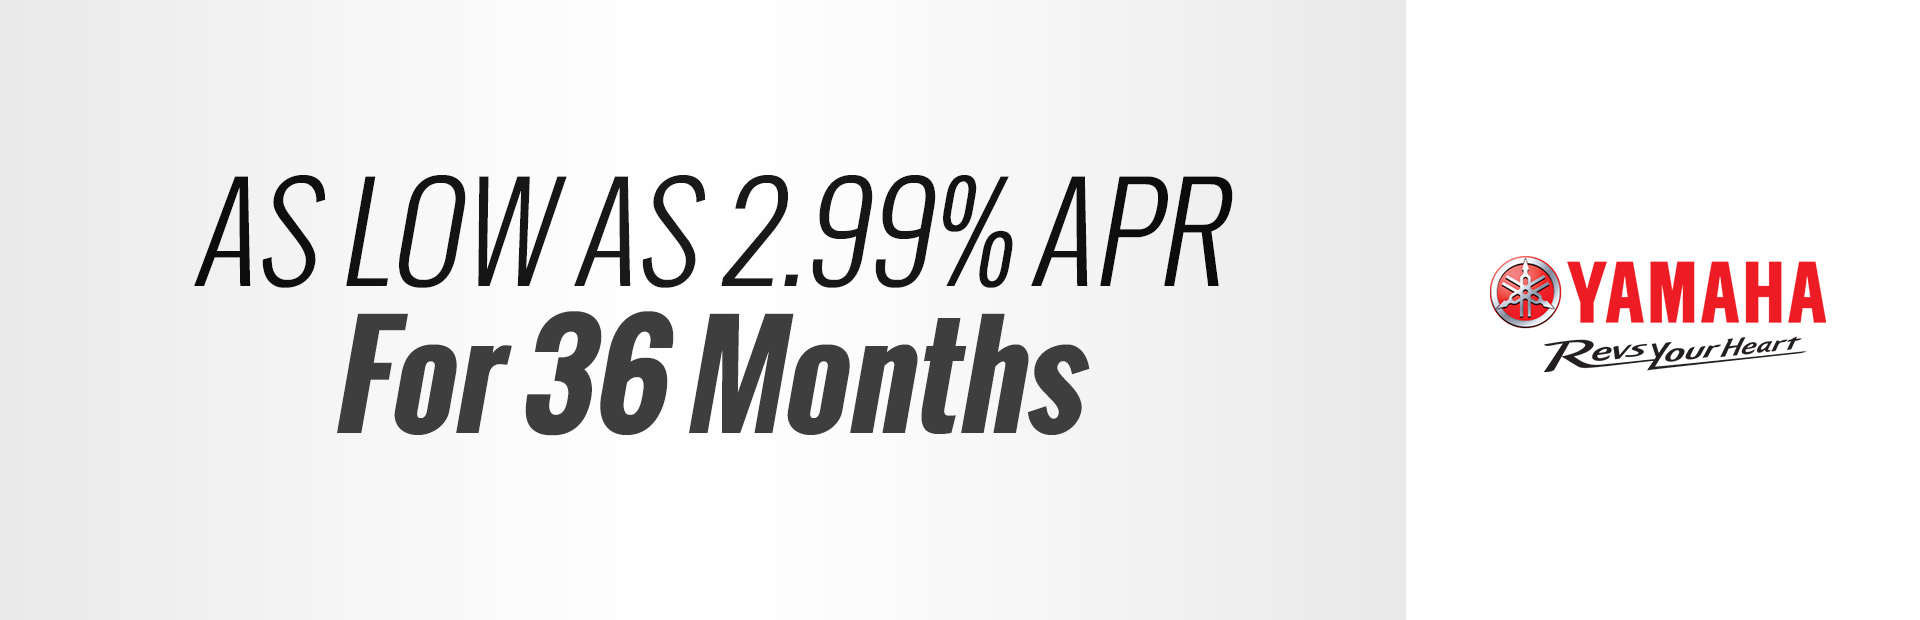 Yamaha: As Low As 2.99% APR for 36 months